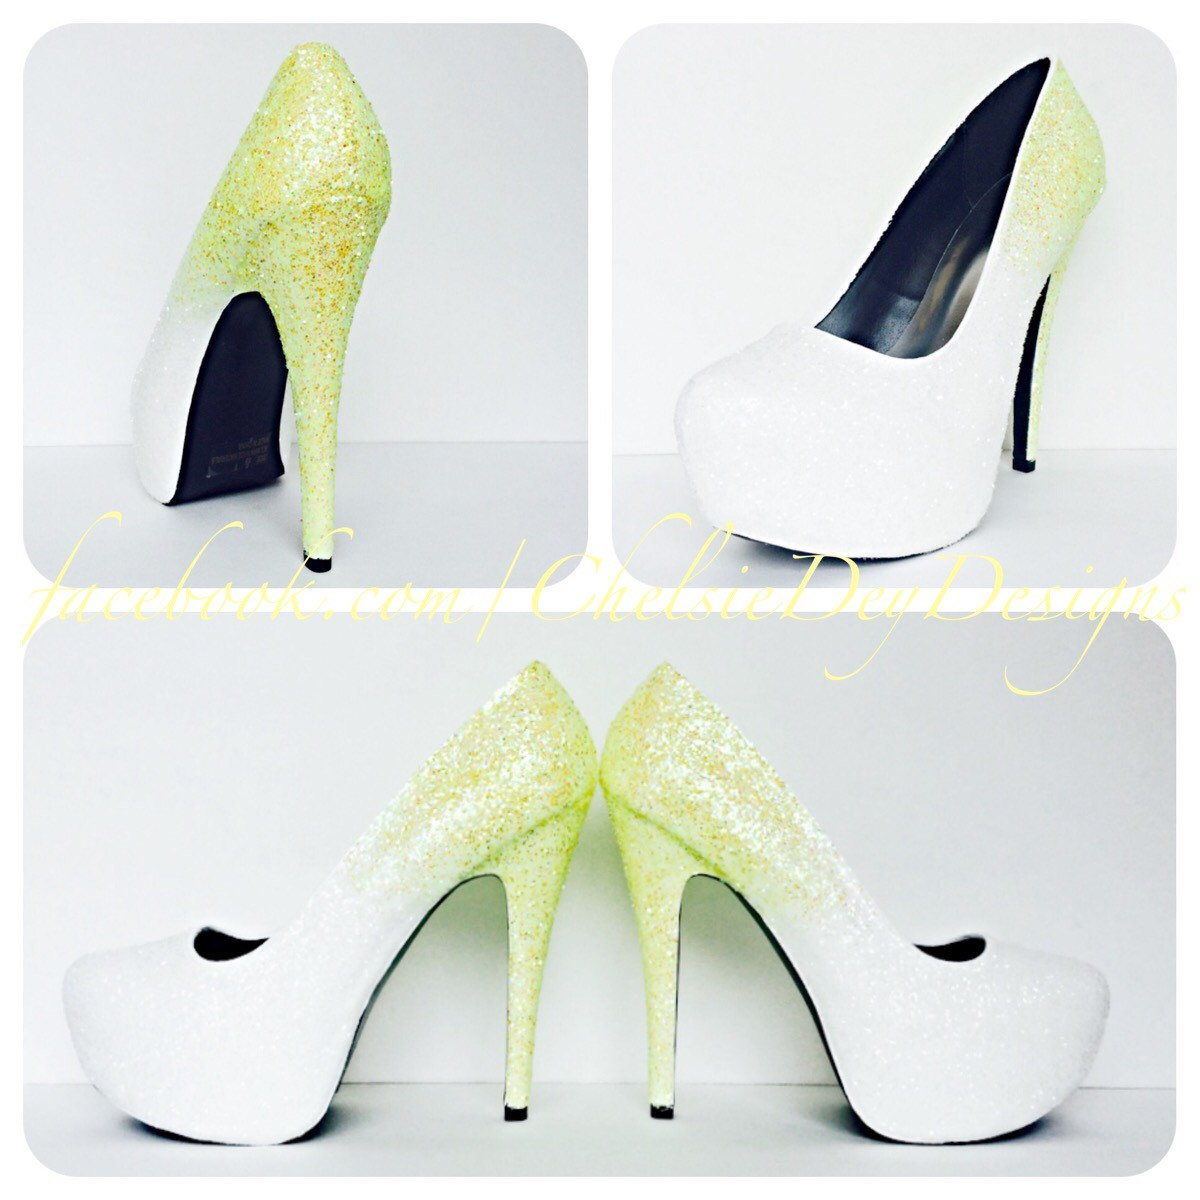 bd43db47cdb Glitter High Heels - Yellow White Ombre Pumps - Spakly Wedding Shoes -  Sparkly Lemon Yellow